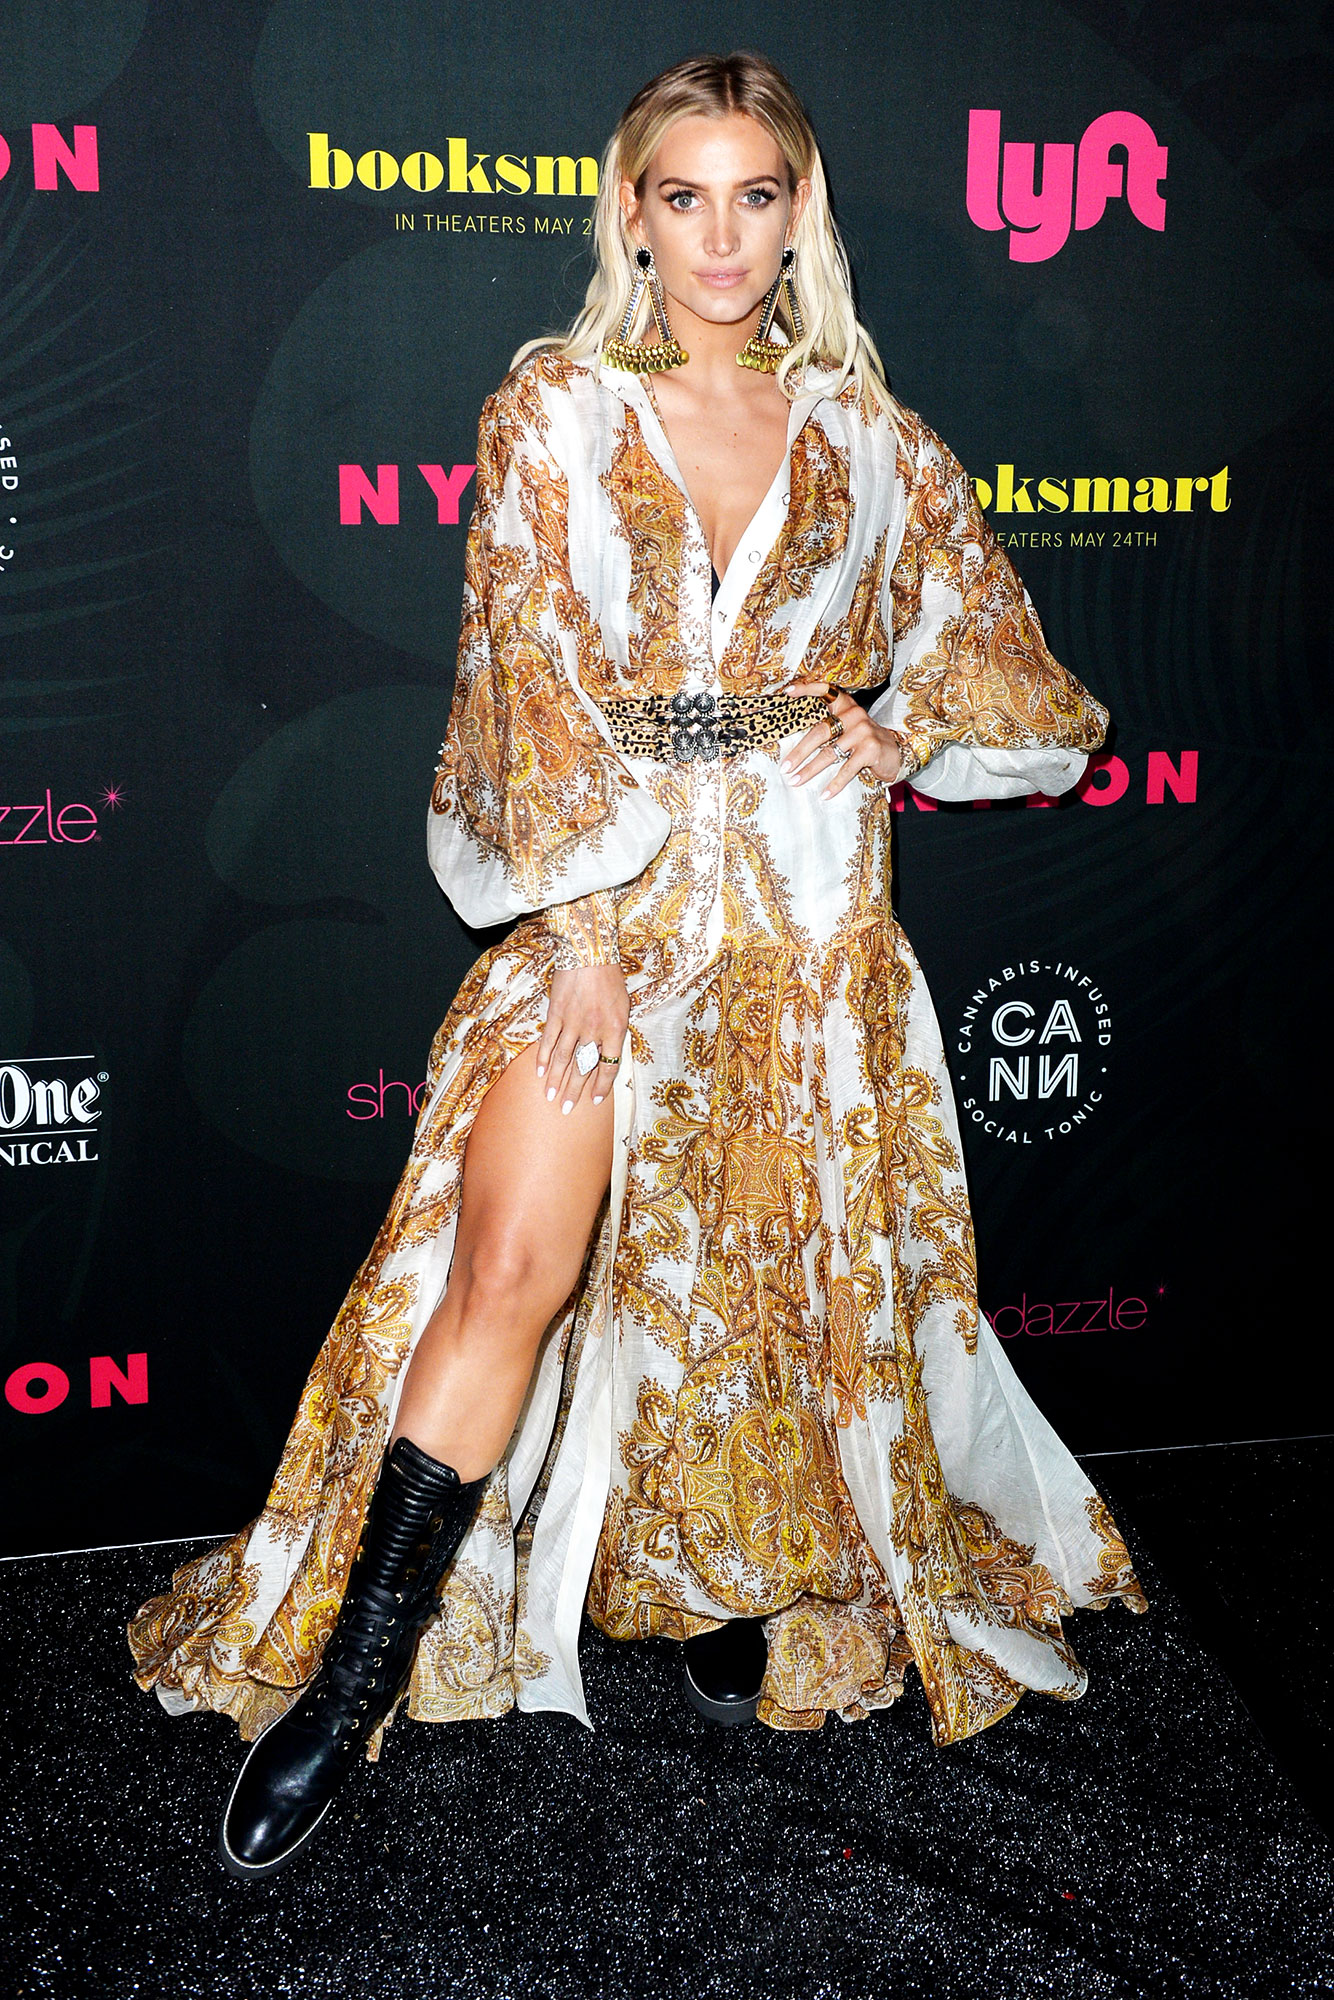 Ashlee Simpson coachella fashion - Paying homage to 2018 festival season's combat boots-trend, the songstress paired hers with a voluminous gold-printed Zimmermann maxi at the NYLON Midnight Garden Party on Friday, April 12.